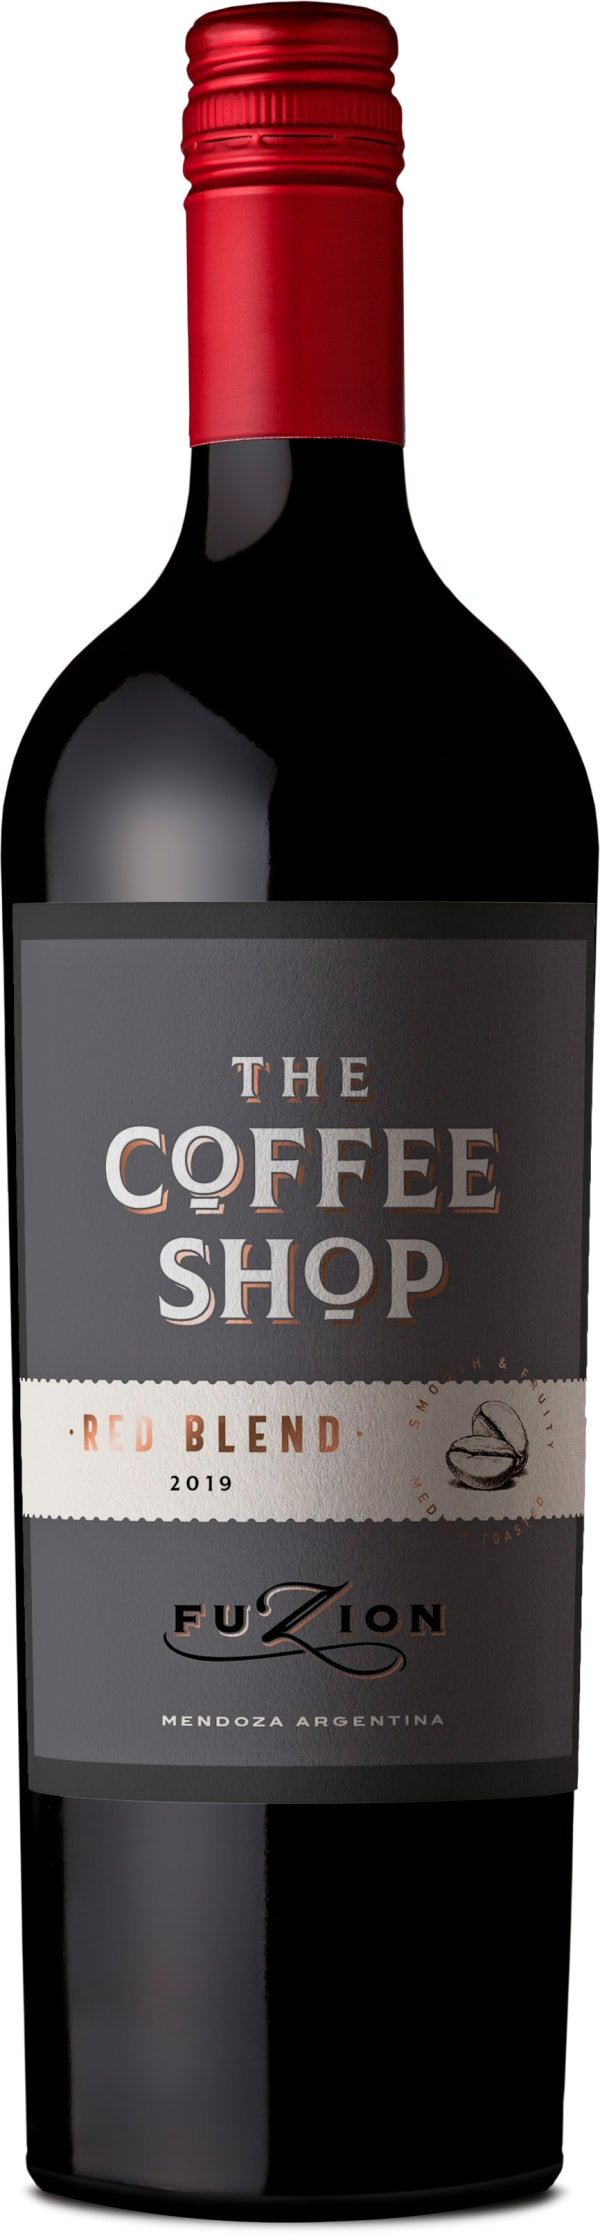 Fuzion The Coffee Shop Red Blend 2018